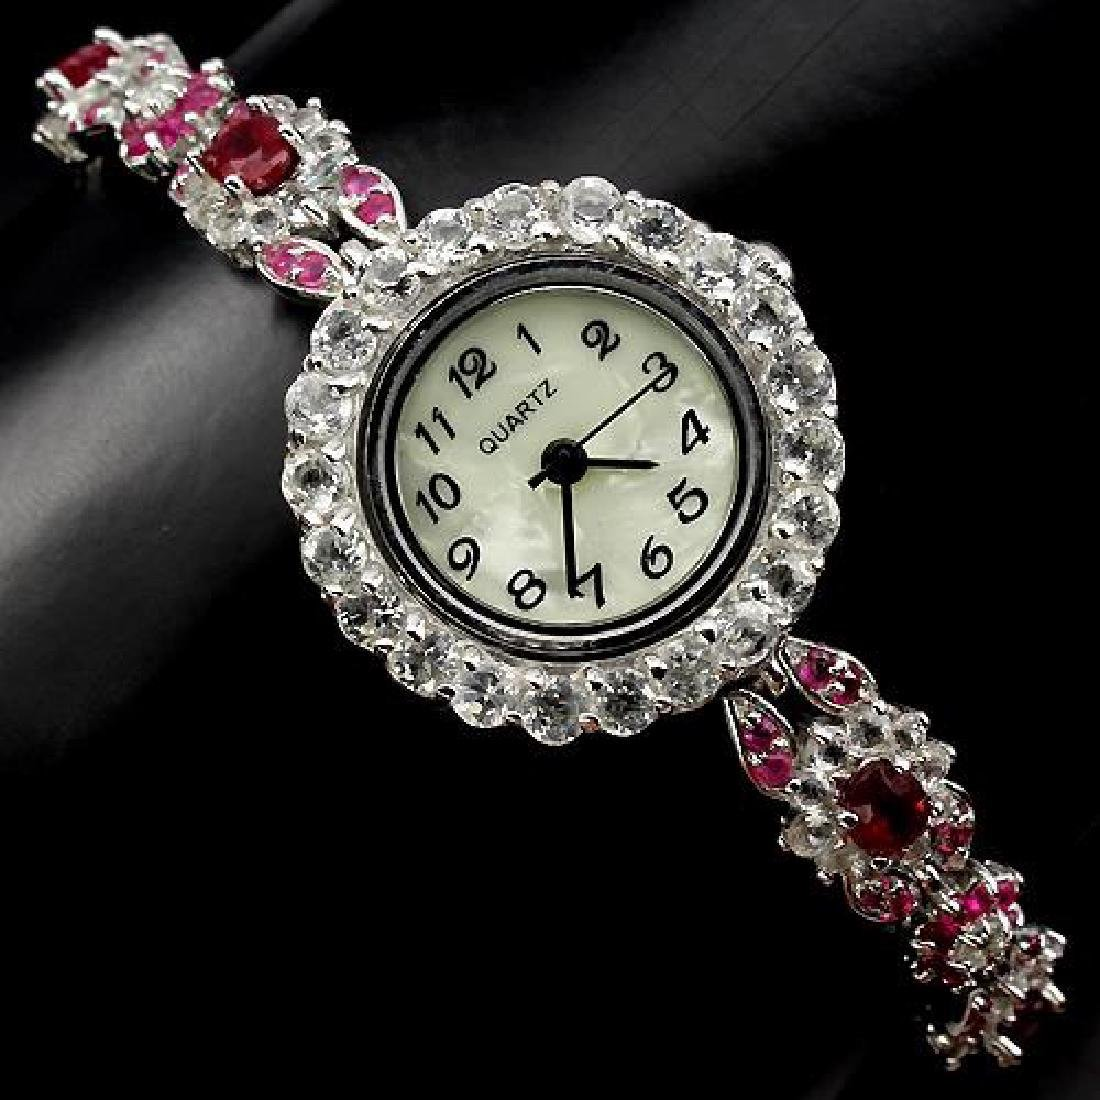 Platinum Sterling Silver White Topaz Ruby Watch, 8.1ctw